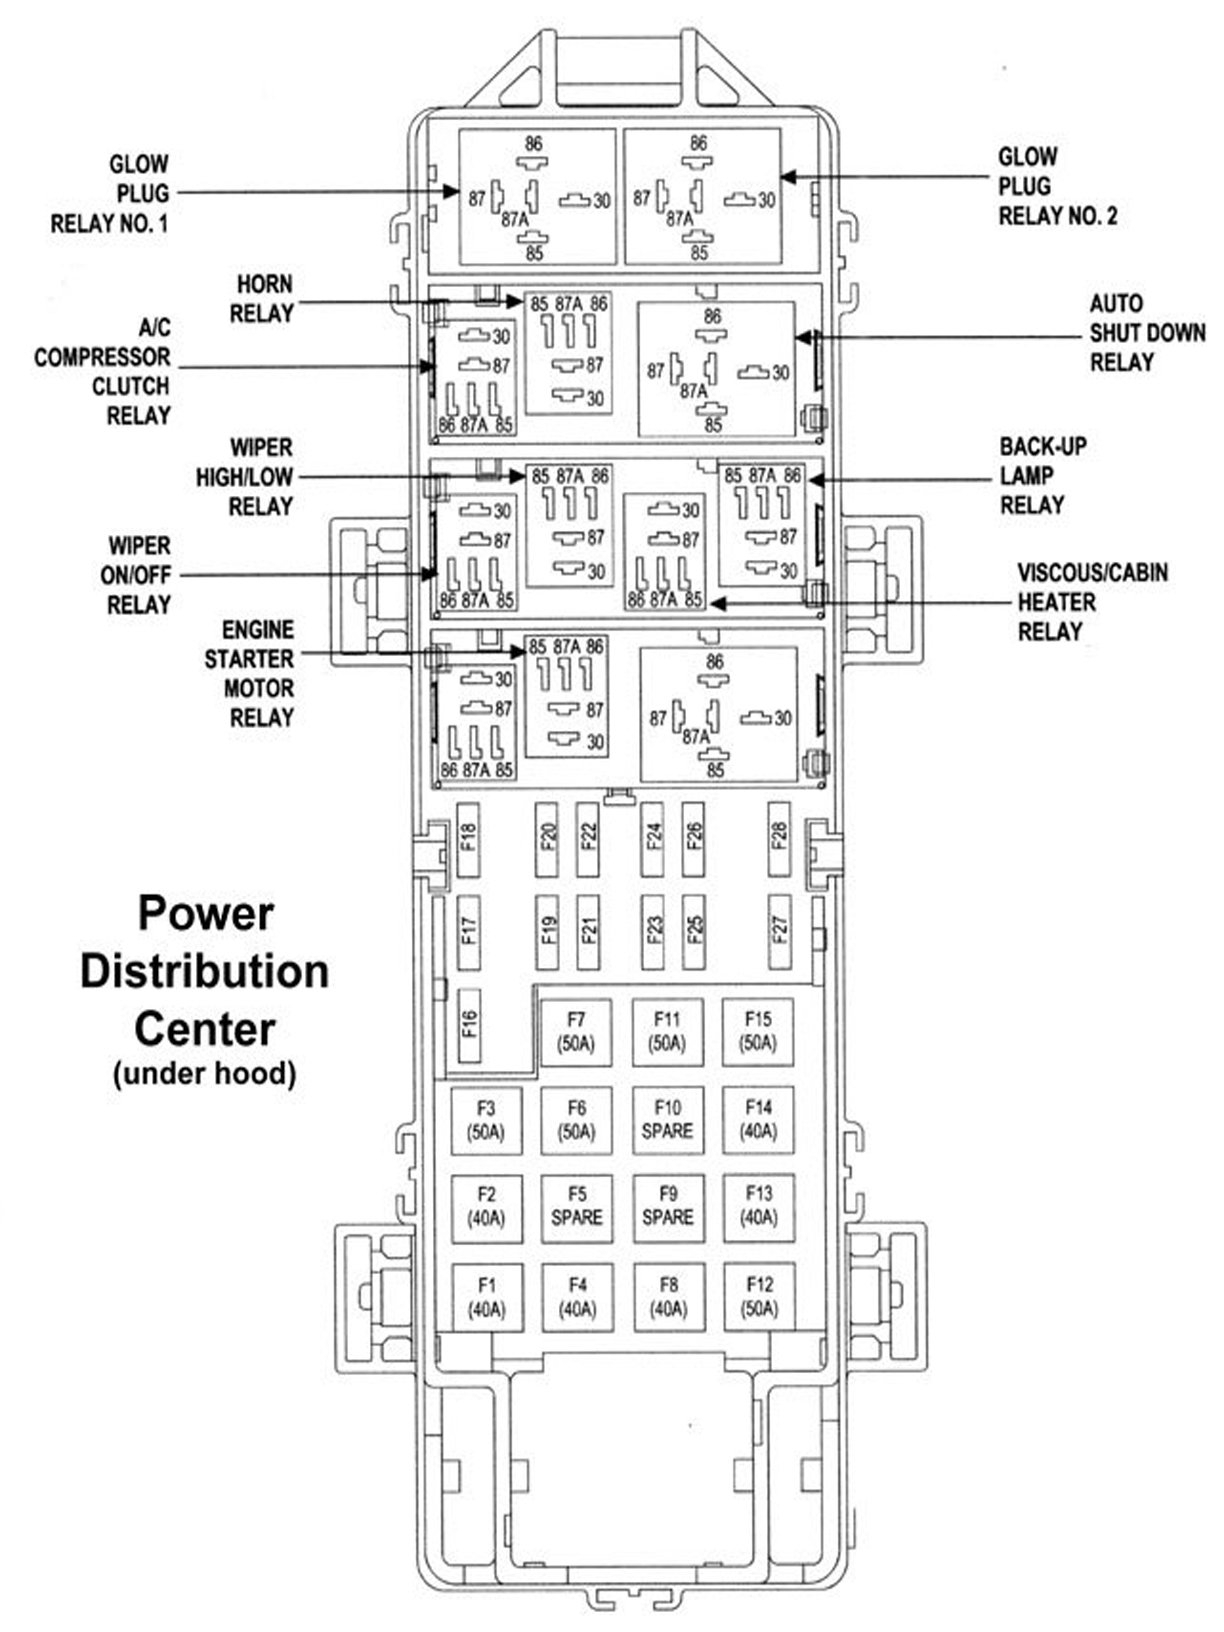 jeep grand cherokee wj 1999 to 2004 fuse box diagram cherokeeforum intended for 1998 jeep grand cherokee parts diagram jeep grand cherokee wj 1999 to 2004 fuse box diagram 1998 jeep grand cherokee fuse box layout at n-0.co